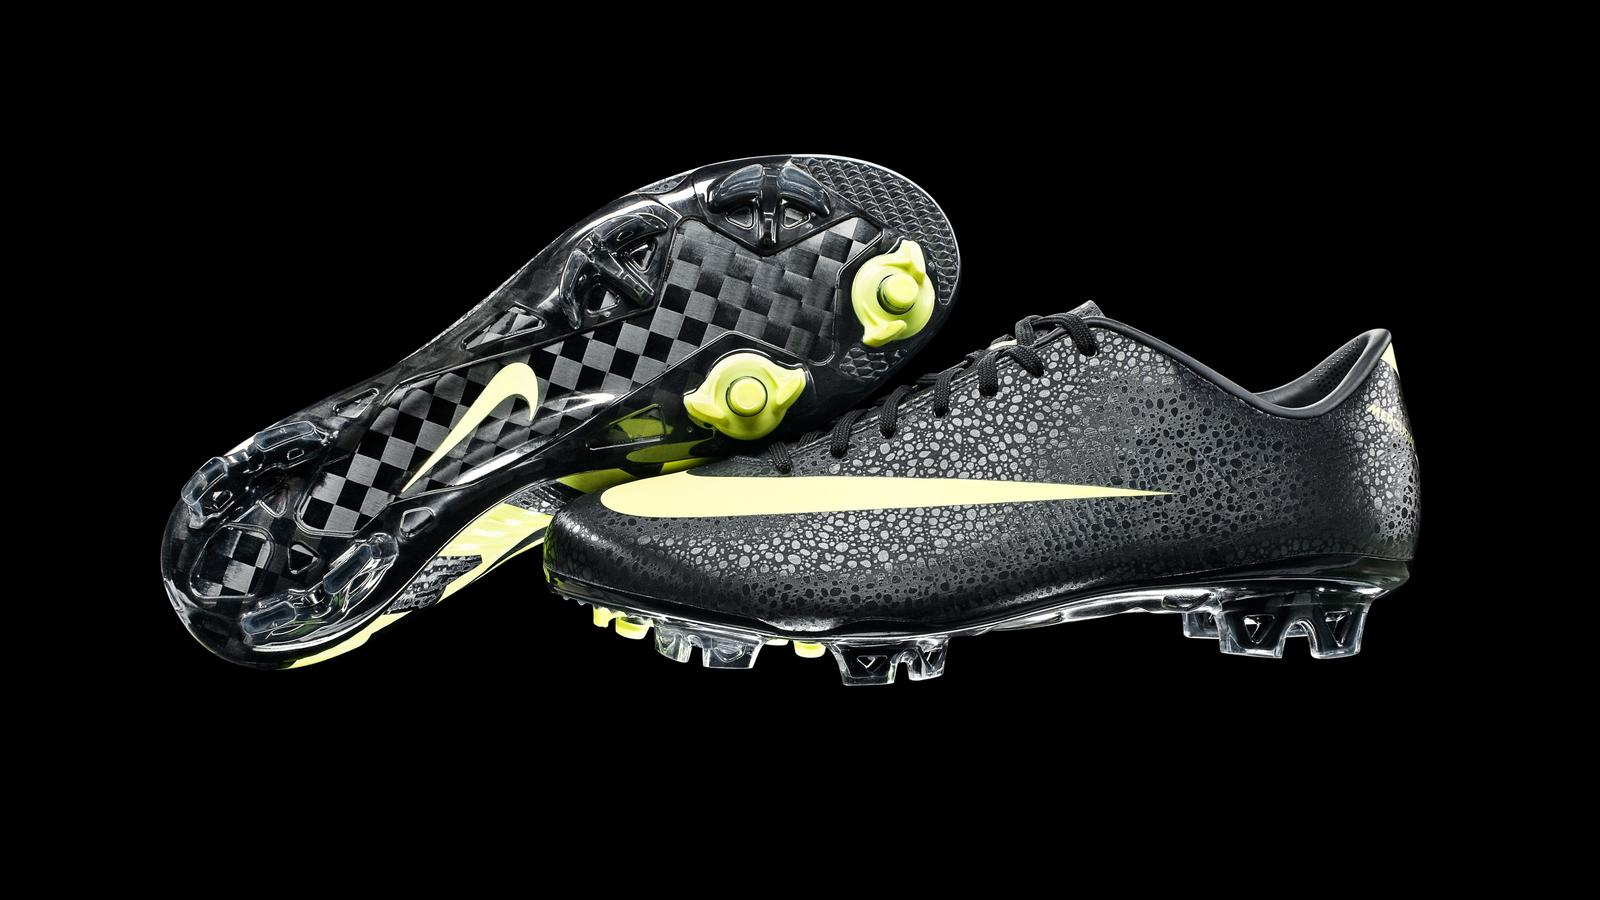 M31_NIKE _VAPOR_SUPERFLY 35276_Black